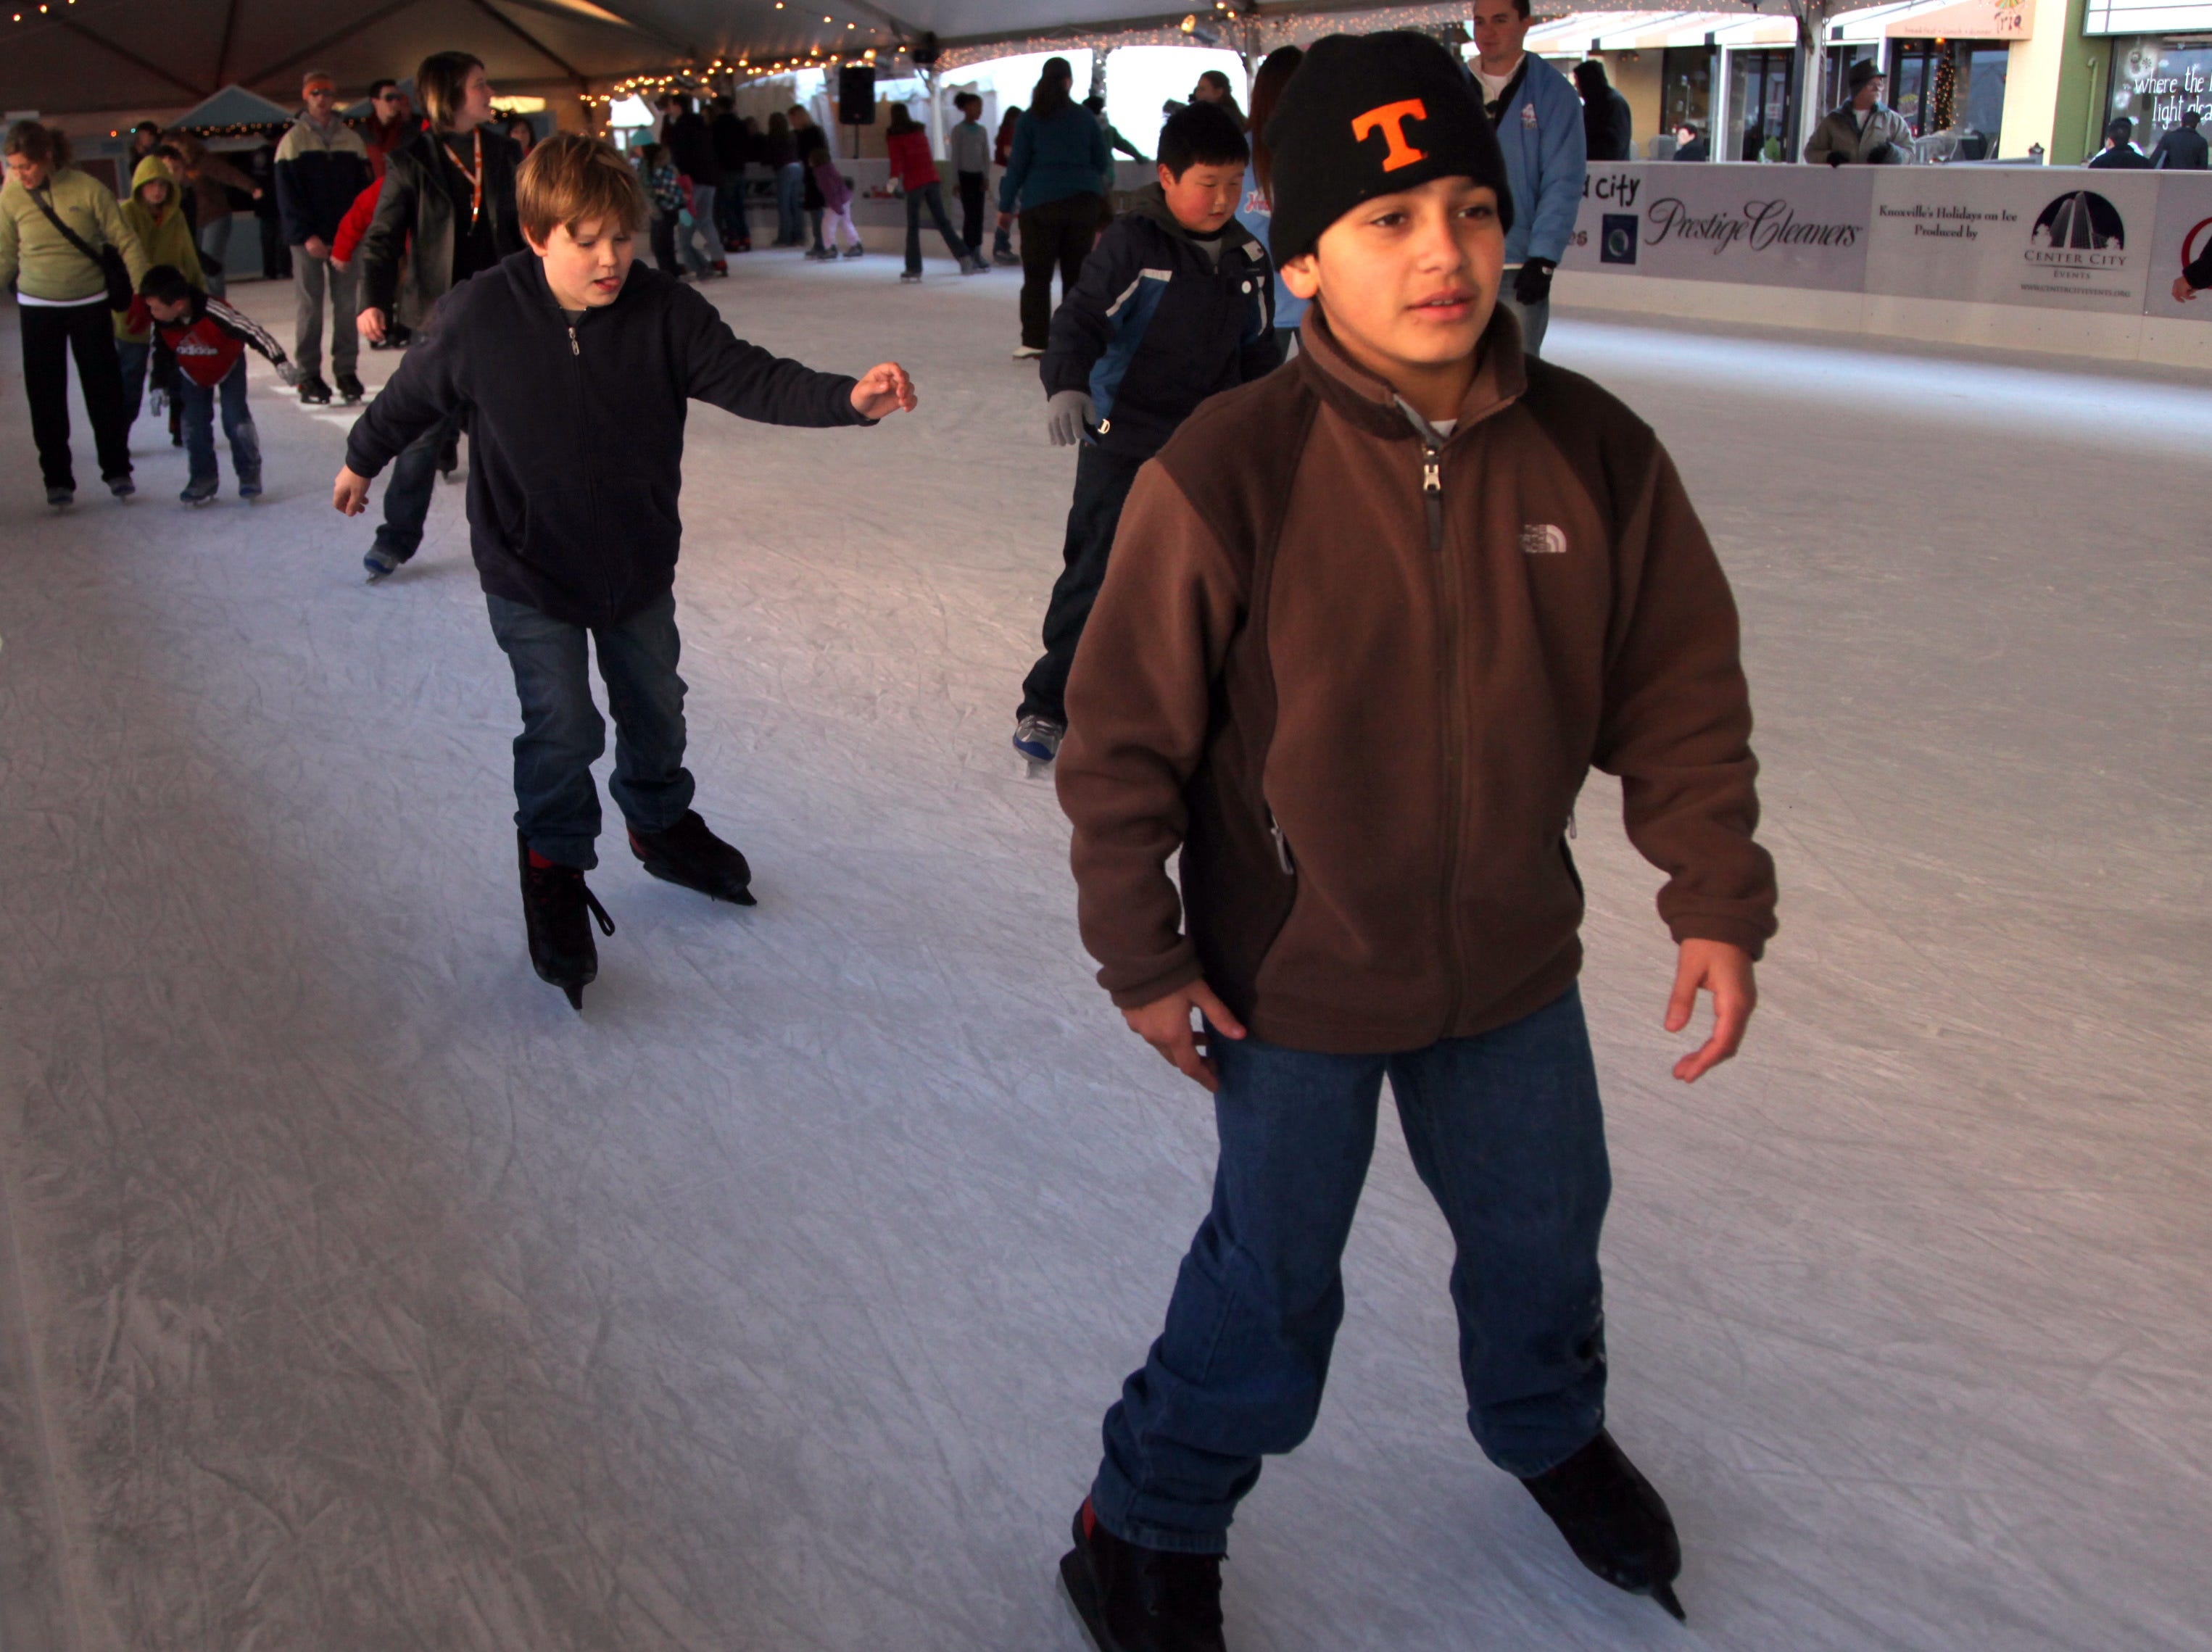 Camron Natour, right, and Camriunn Morgan, left, ice skate during Knoxville's Holidays on Ice on Market Square on Friday, Nov. 27, 2009.